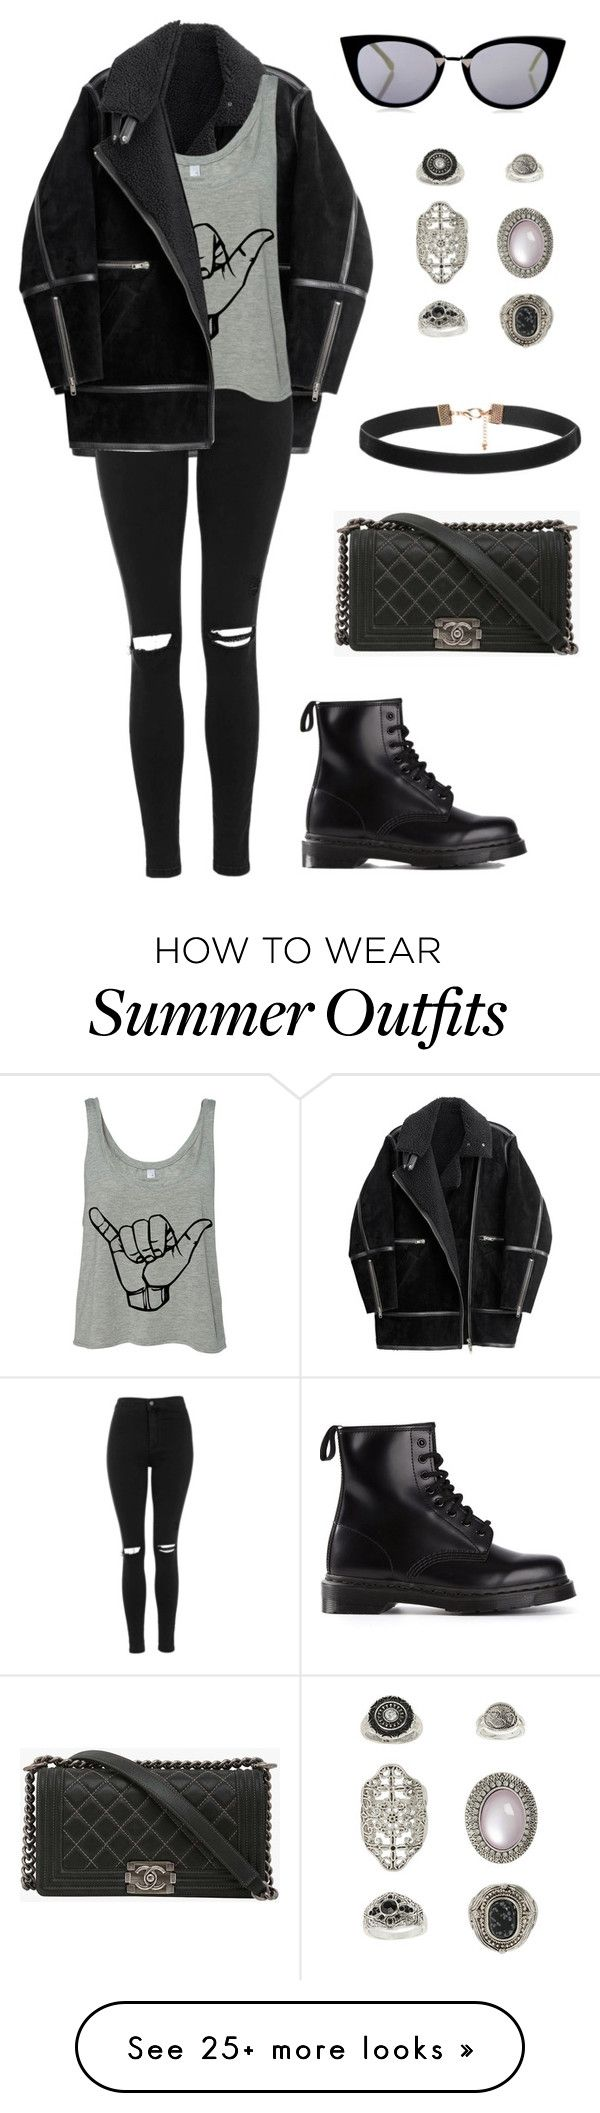 """#319"" by uccelli on Polyvore featuring H&M, Topshop, Dr. Martens, Chanel, Fendi, women's clothing, women, female, woman and misses"